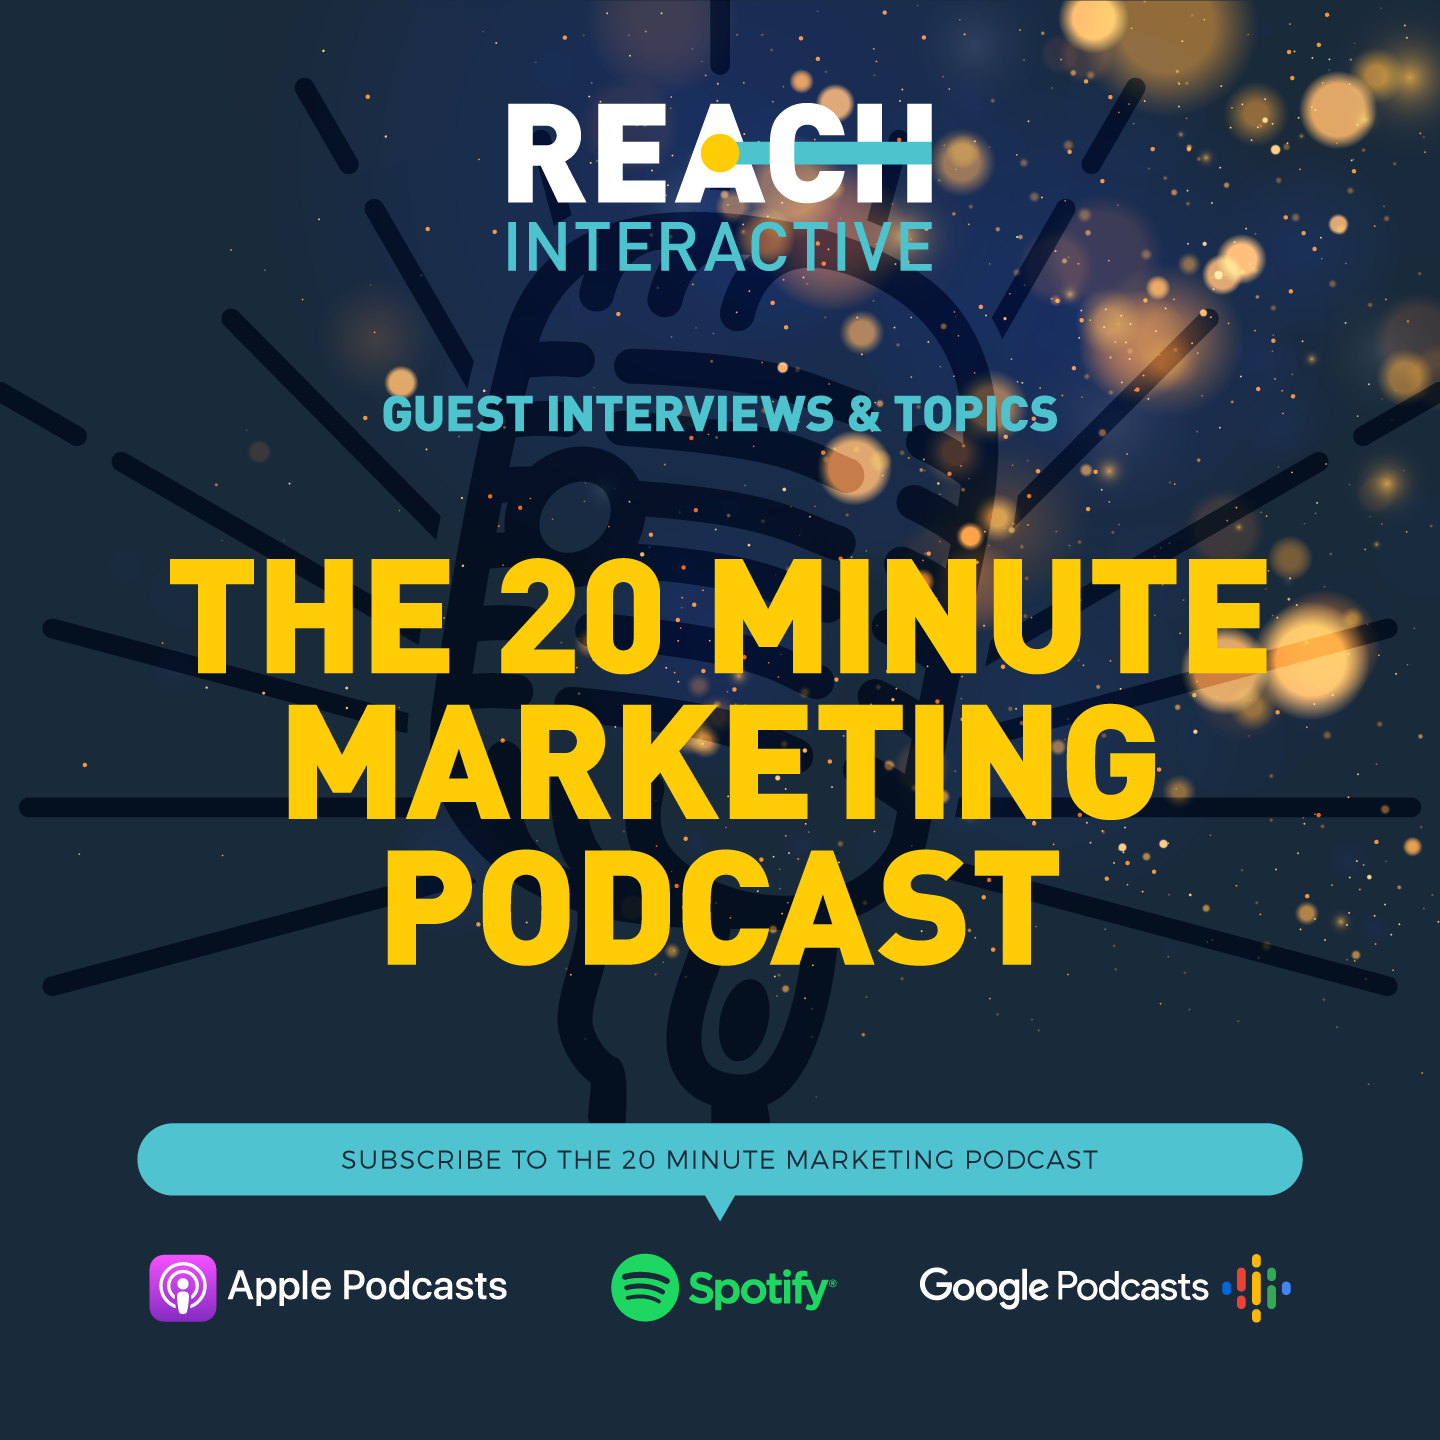 reach-podcast-main-cover.png